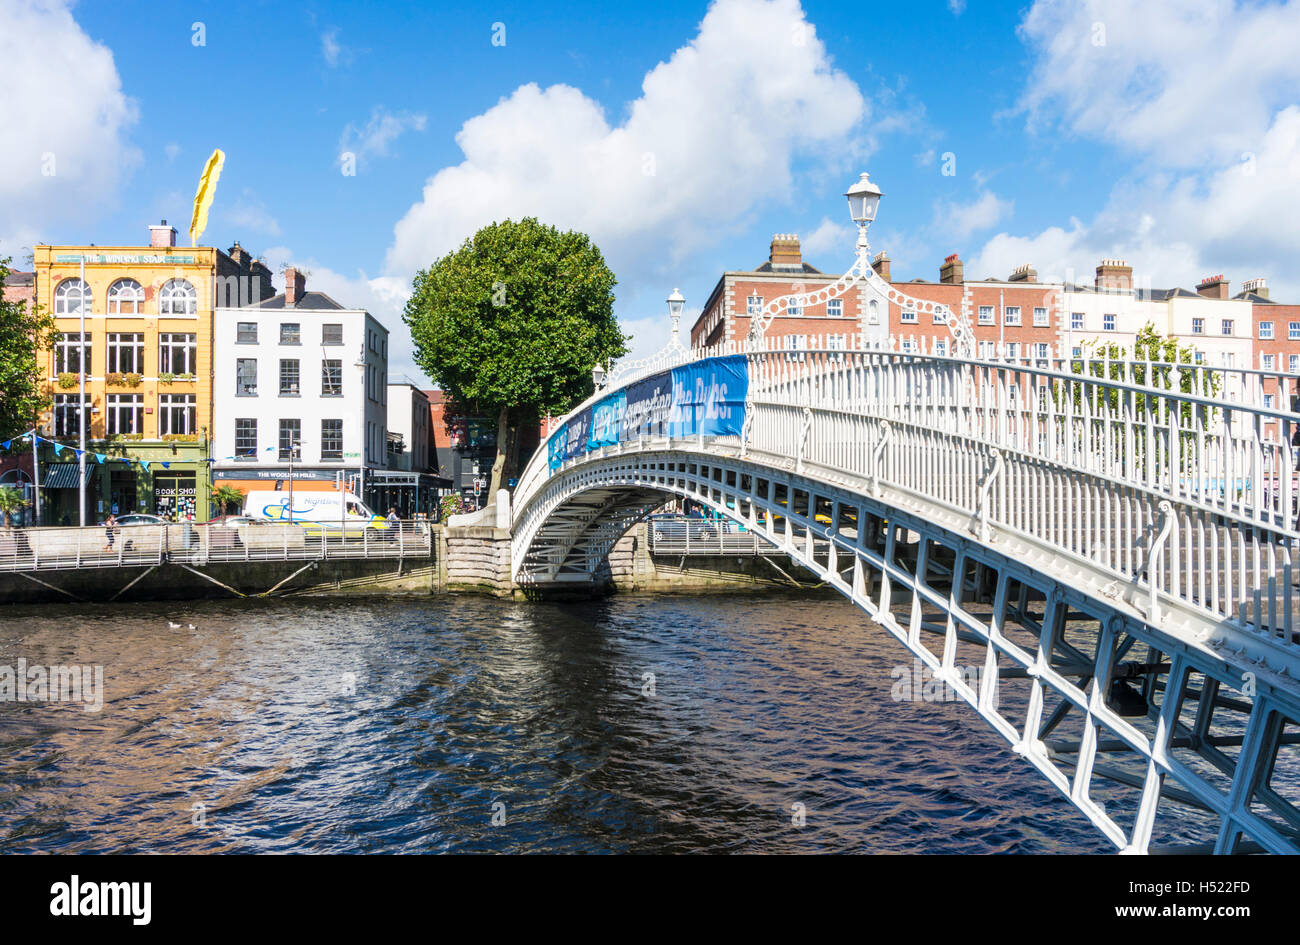 Ha'penny or Halfpenny Bridge over River Liffey Dublin Ireland Europe EU - Stock Image